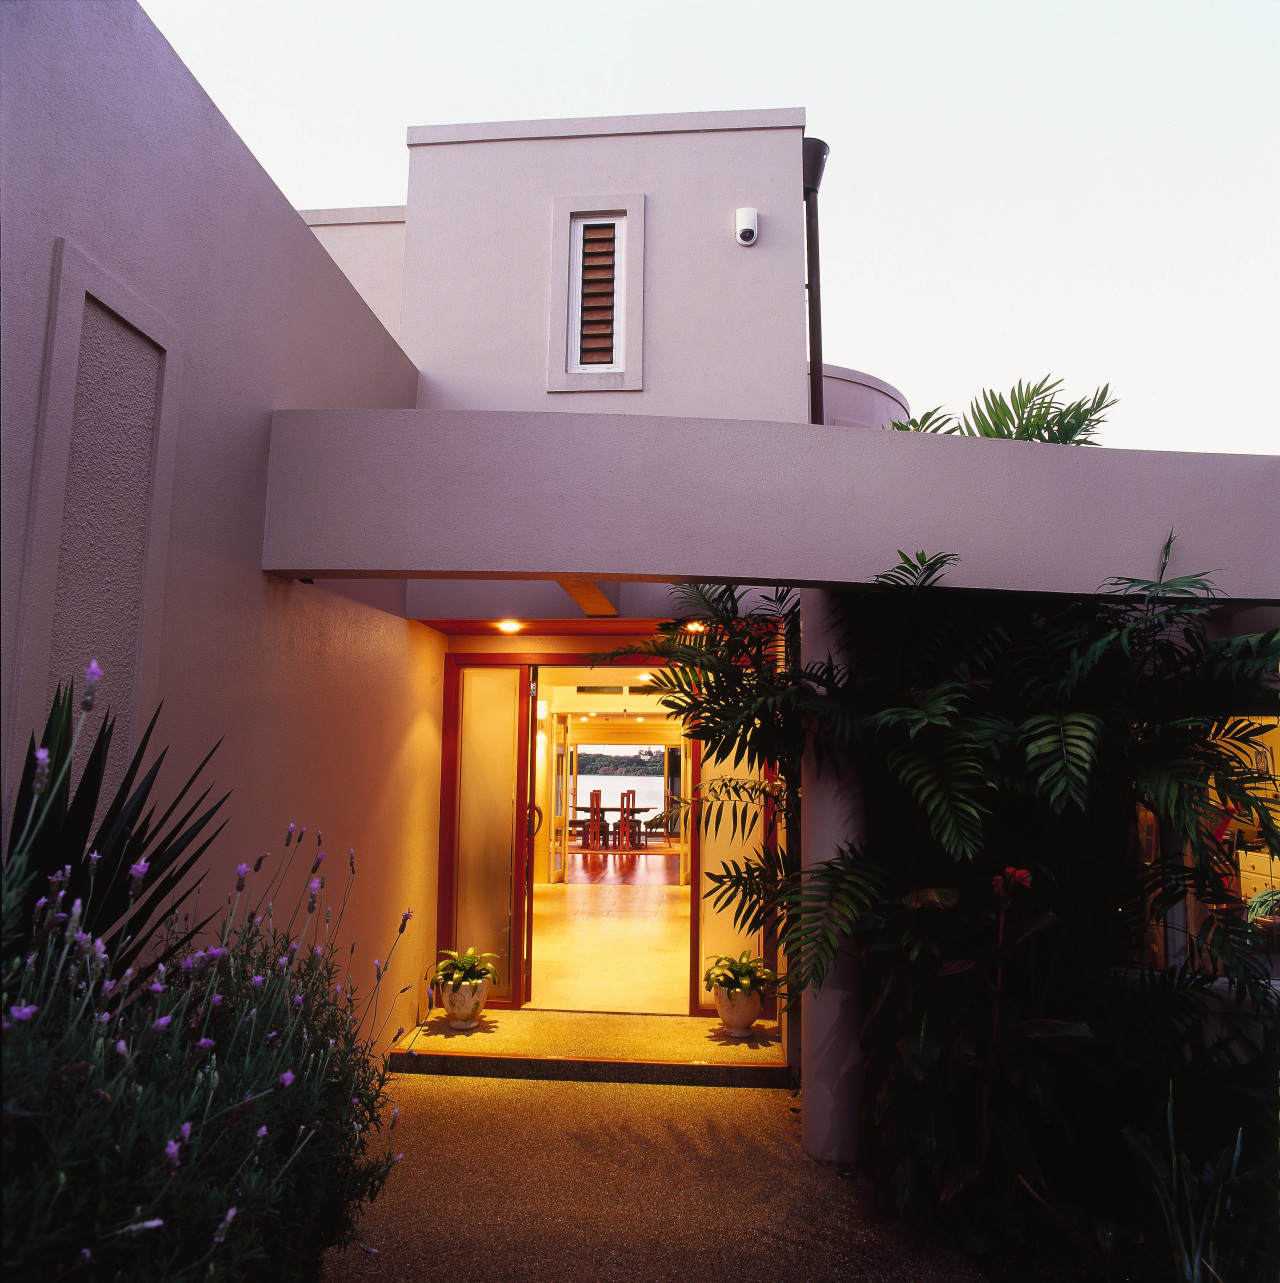 Entranceway to house with bright-lit formal look, and architecture, building, estate, facade, hacienda, home, house, lighting, property, real estate, black